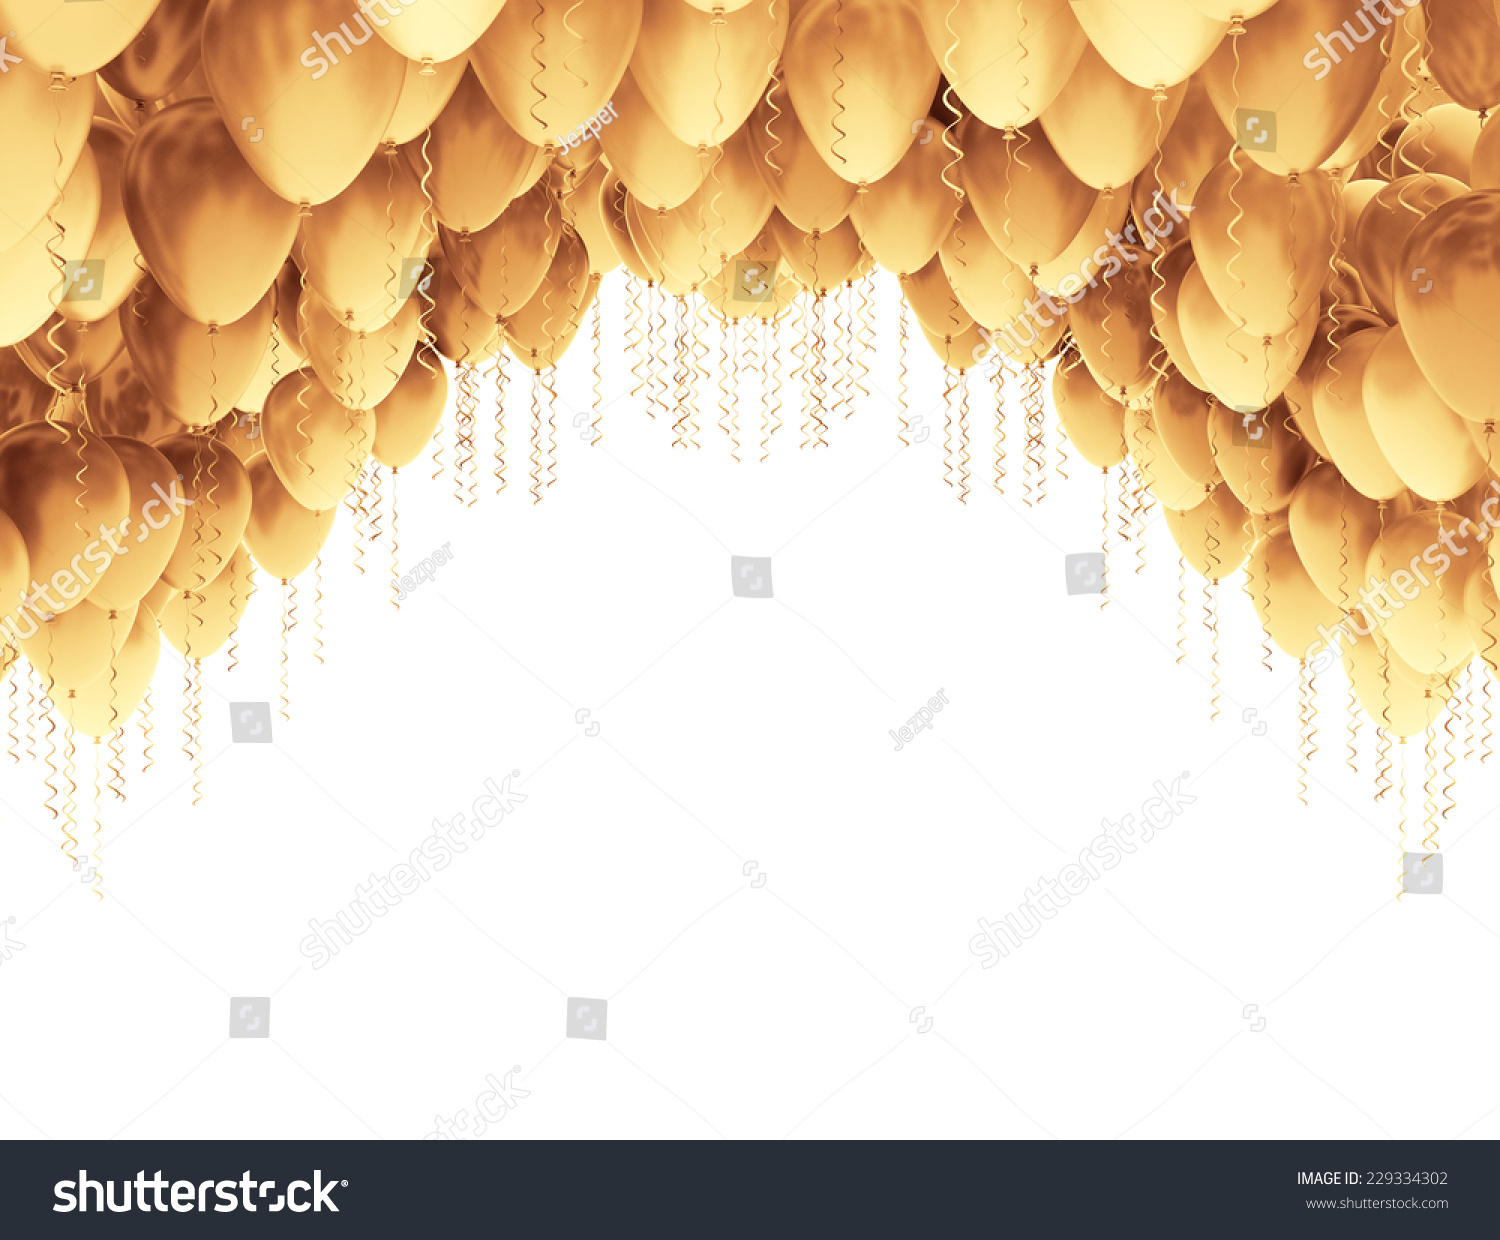 Golden party balloons isolated on white background